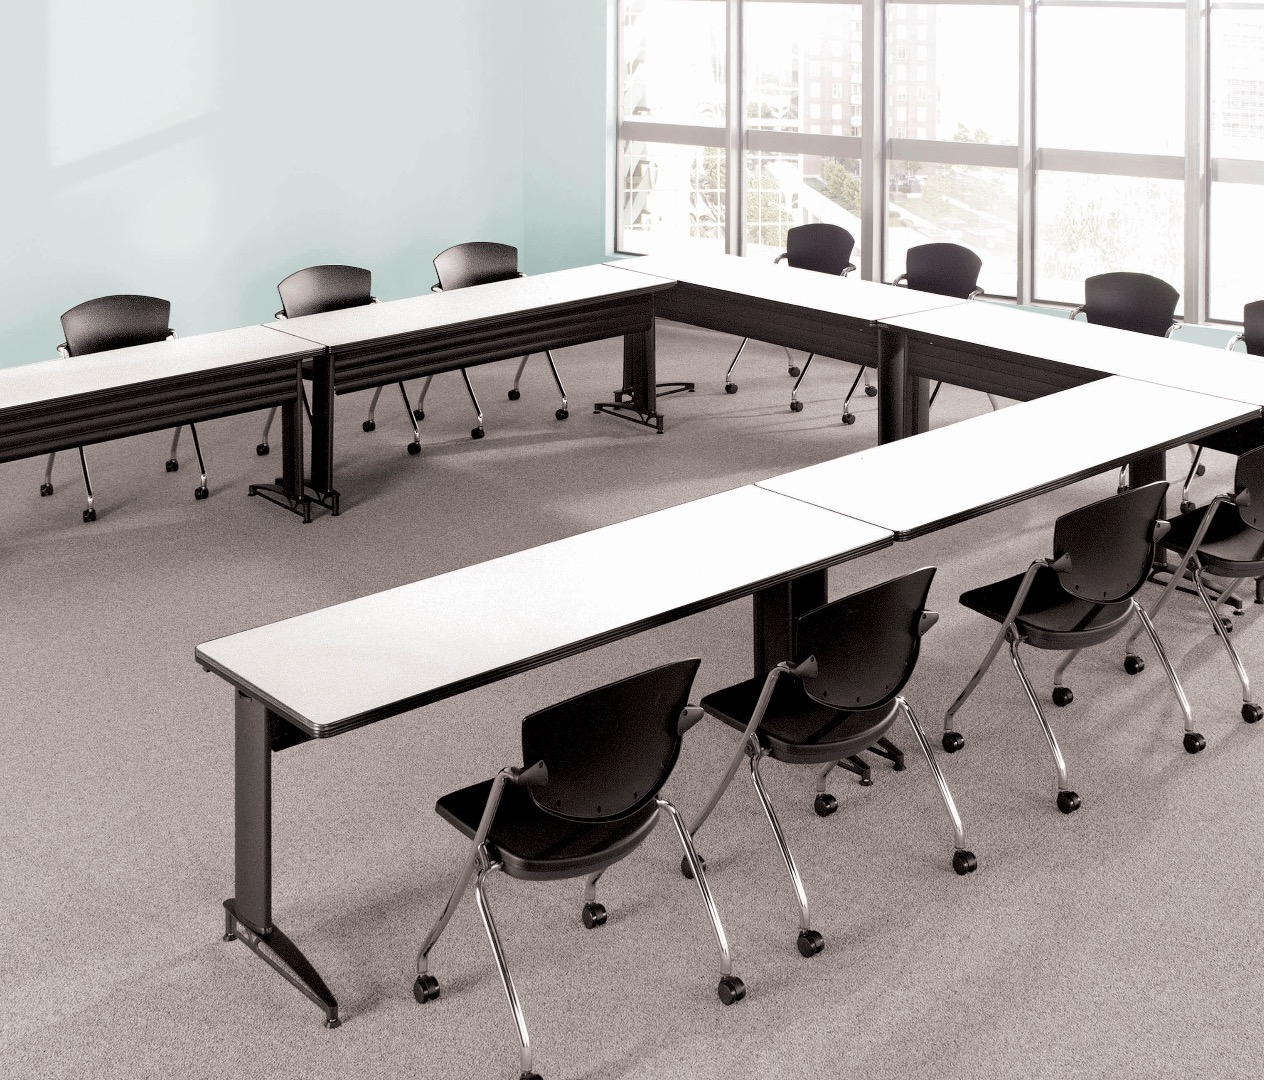 MATS TC Freestanding Stationary Tables - Conference room table mats